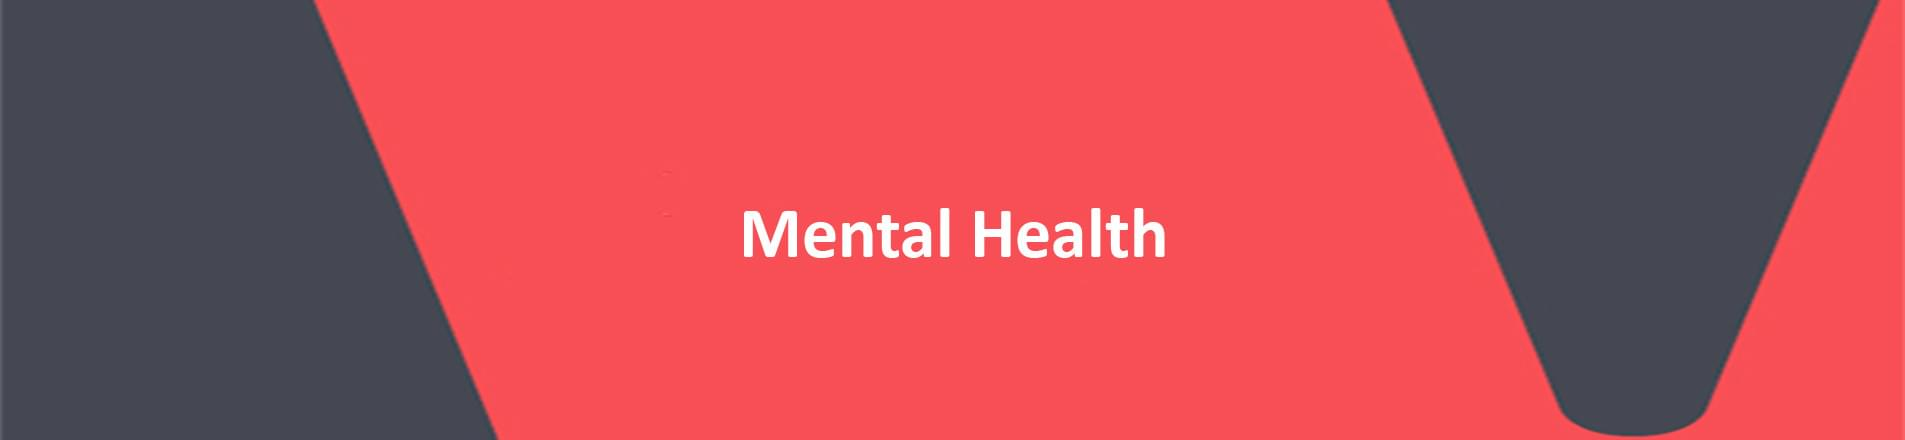 The words 'Mental Health' on red VERCIDA background